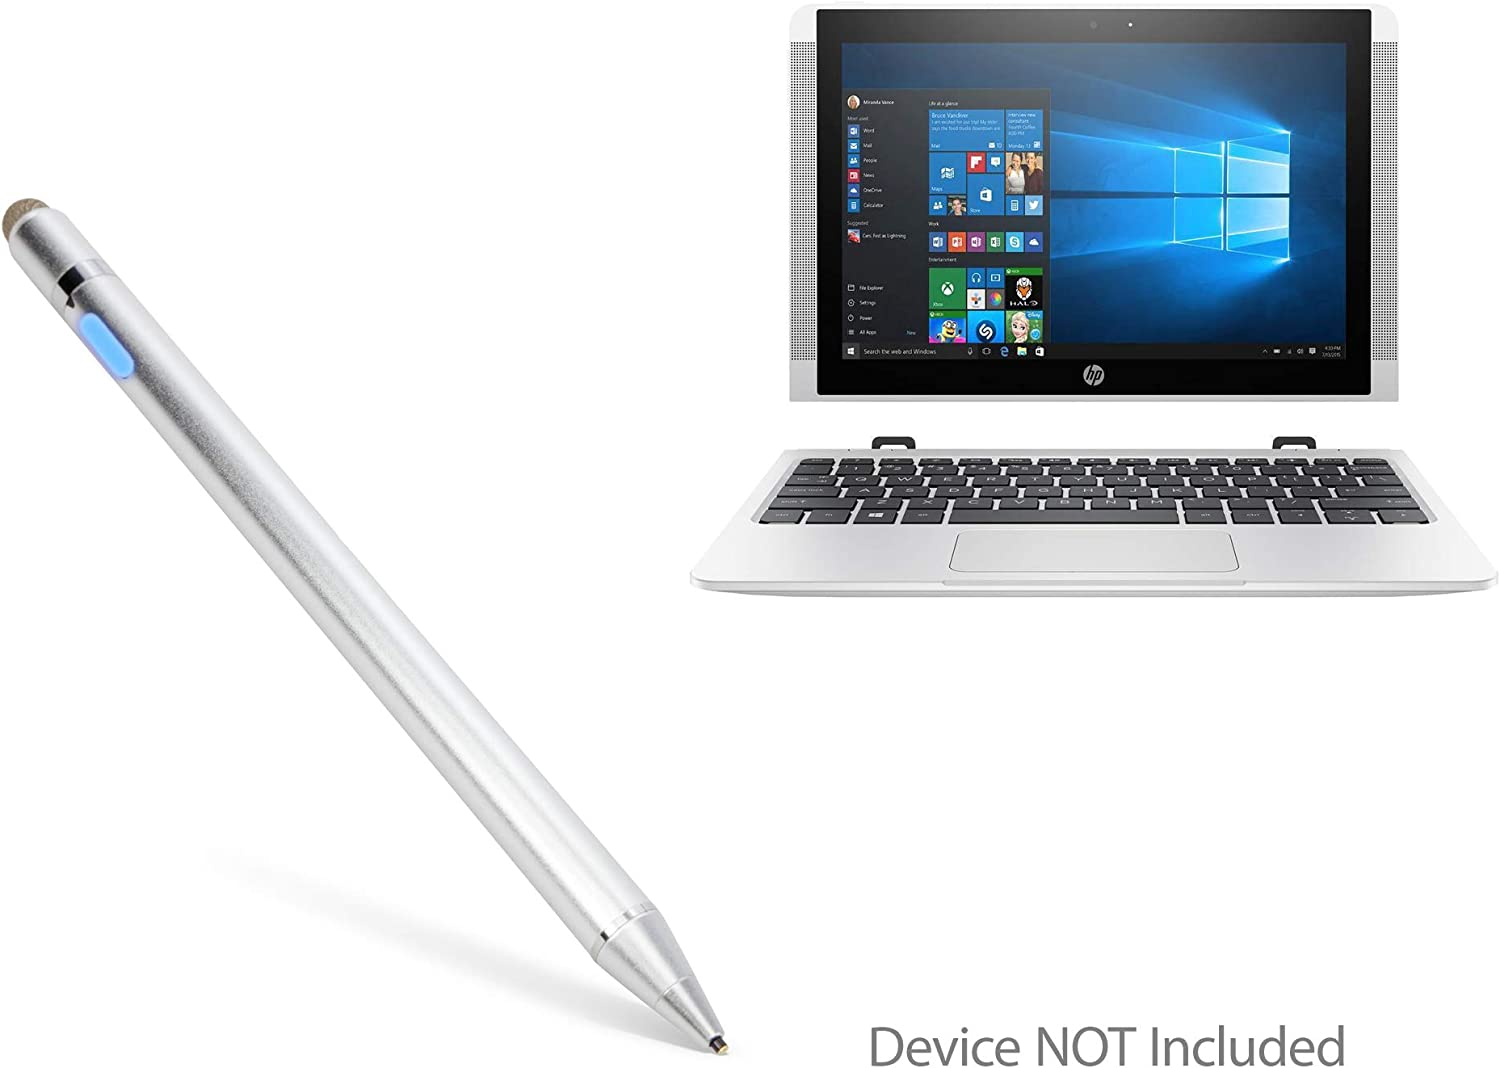 HP Chromebook x2 Stylus Pen, BoxWave [AccuPoint Active Stylus] Electronic Stylus with Ultra Fine Tip for HP Chromebook x2 - Metallic Silver